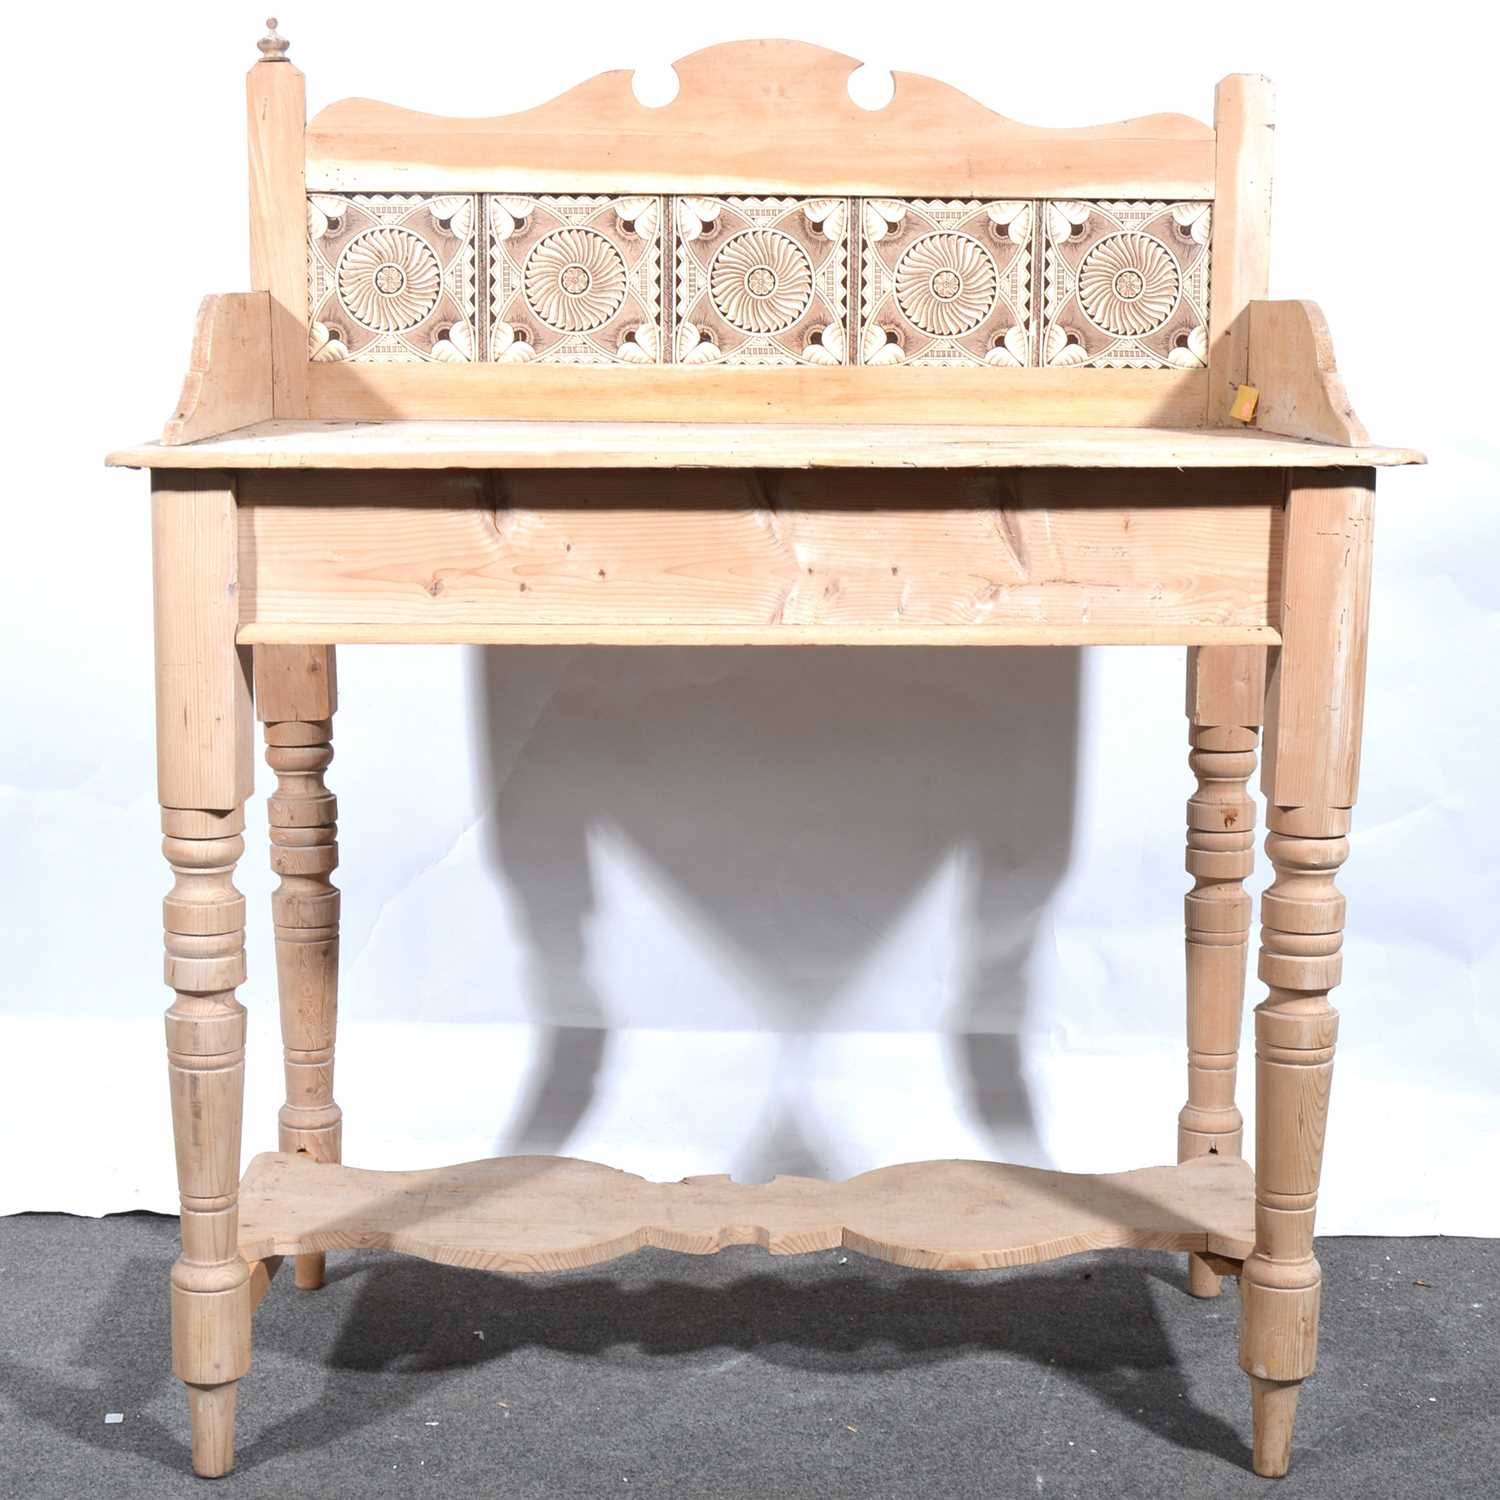 Lot 6 - A stripped pine washstand with tile back.